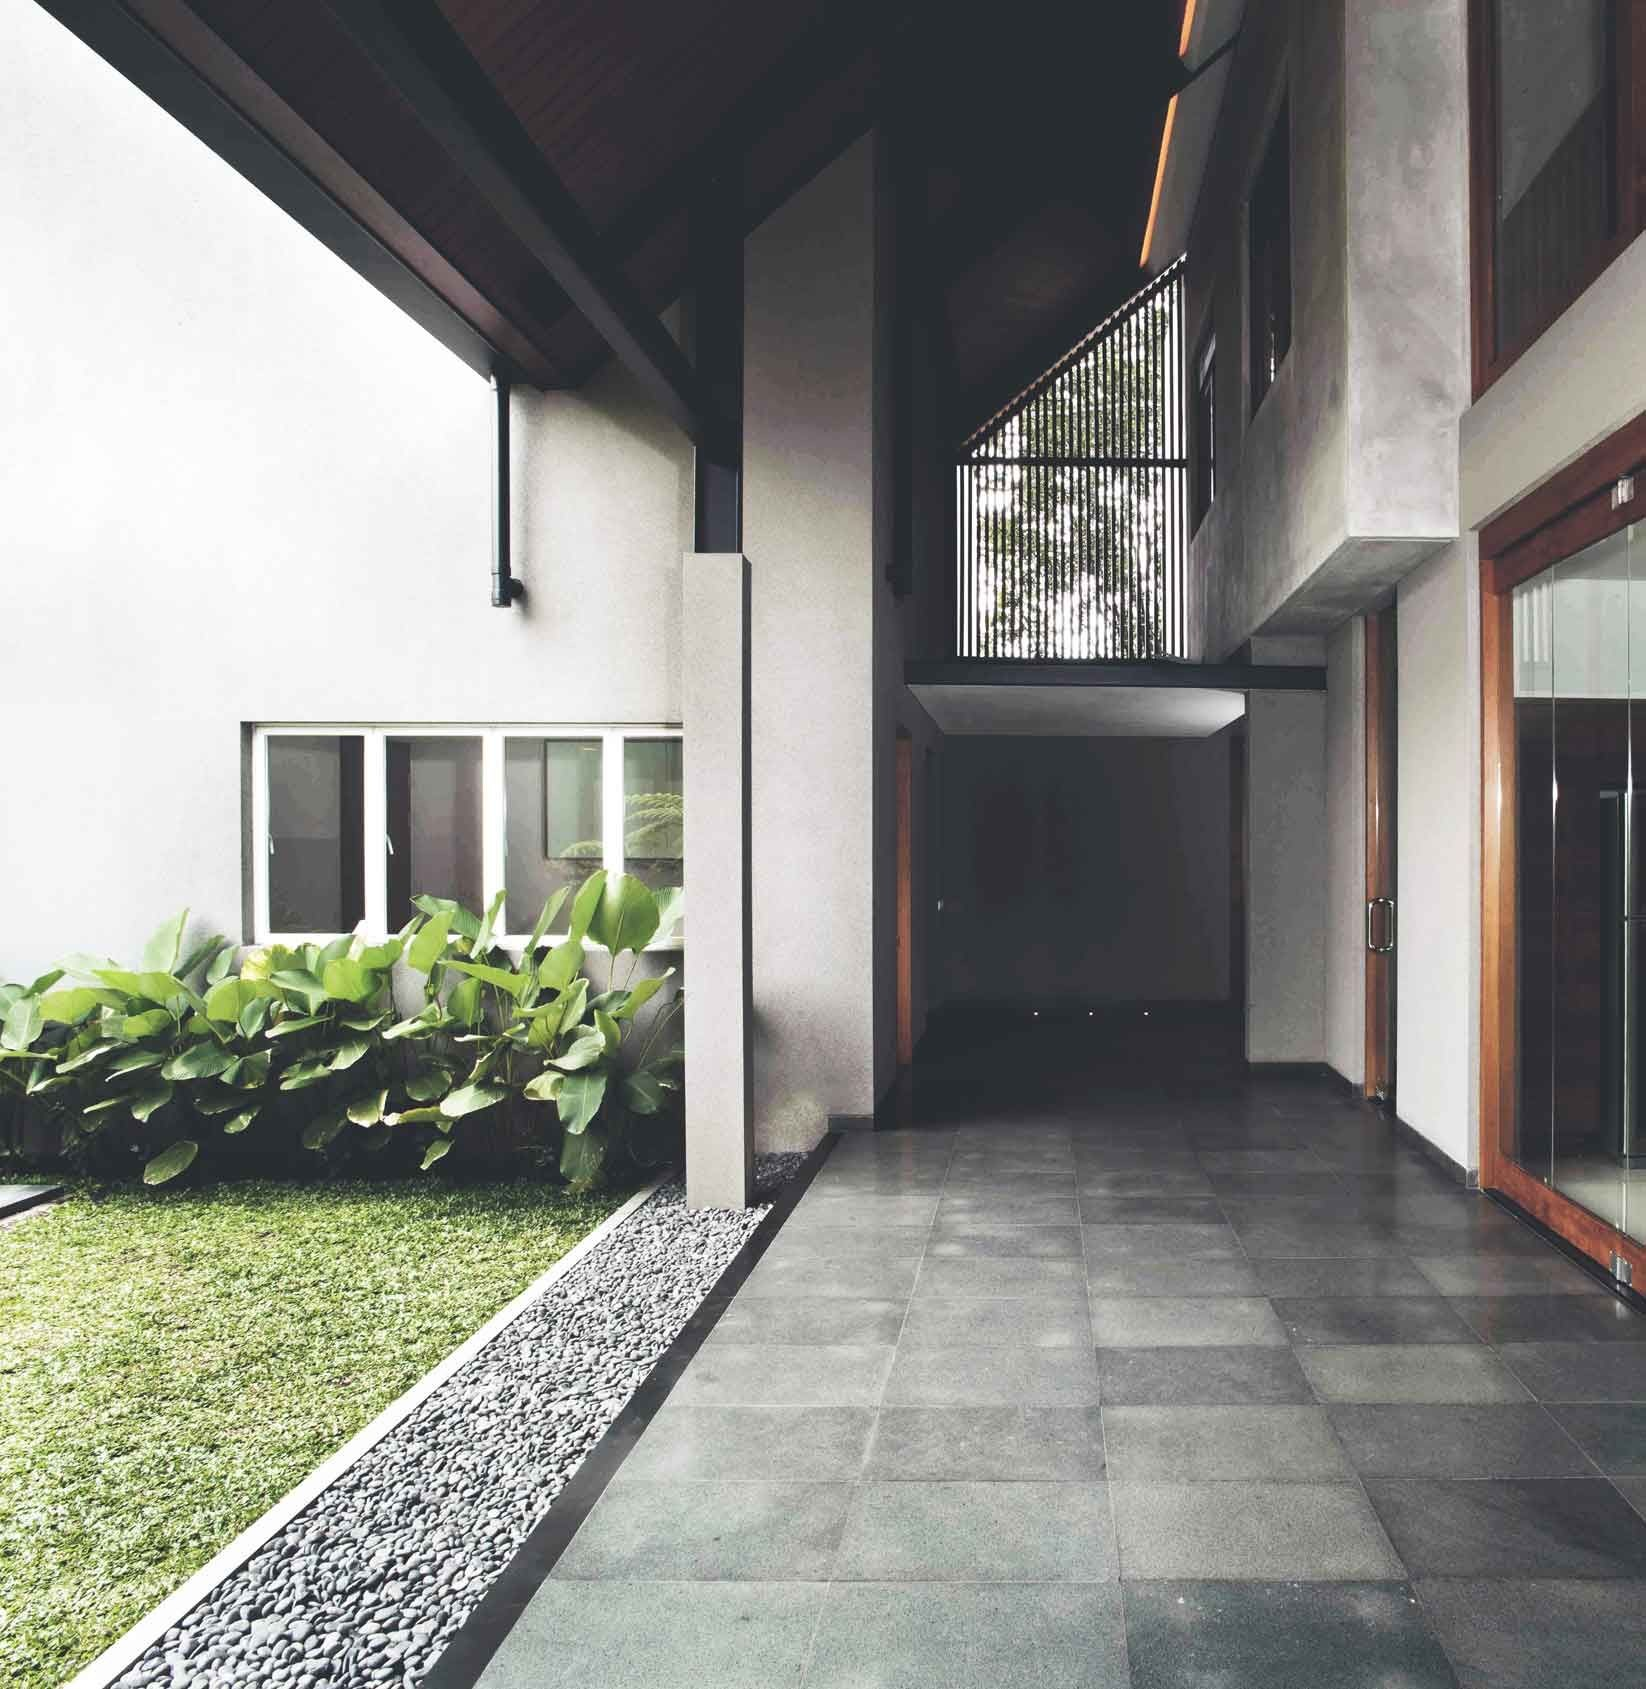 Project Katjapiring House Image 8 Location Bandung Indonesia Site Area 670 m2 Building Area 550 m2 Design Phase 2009 Construction Phase 2009